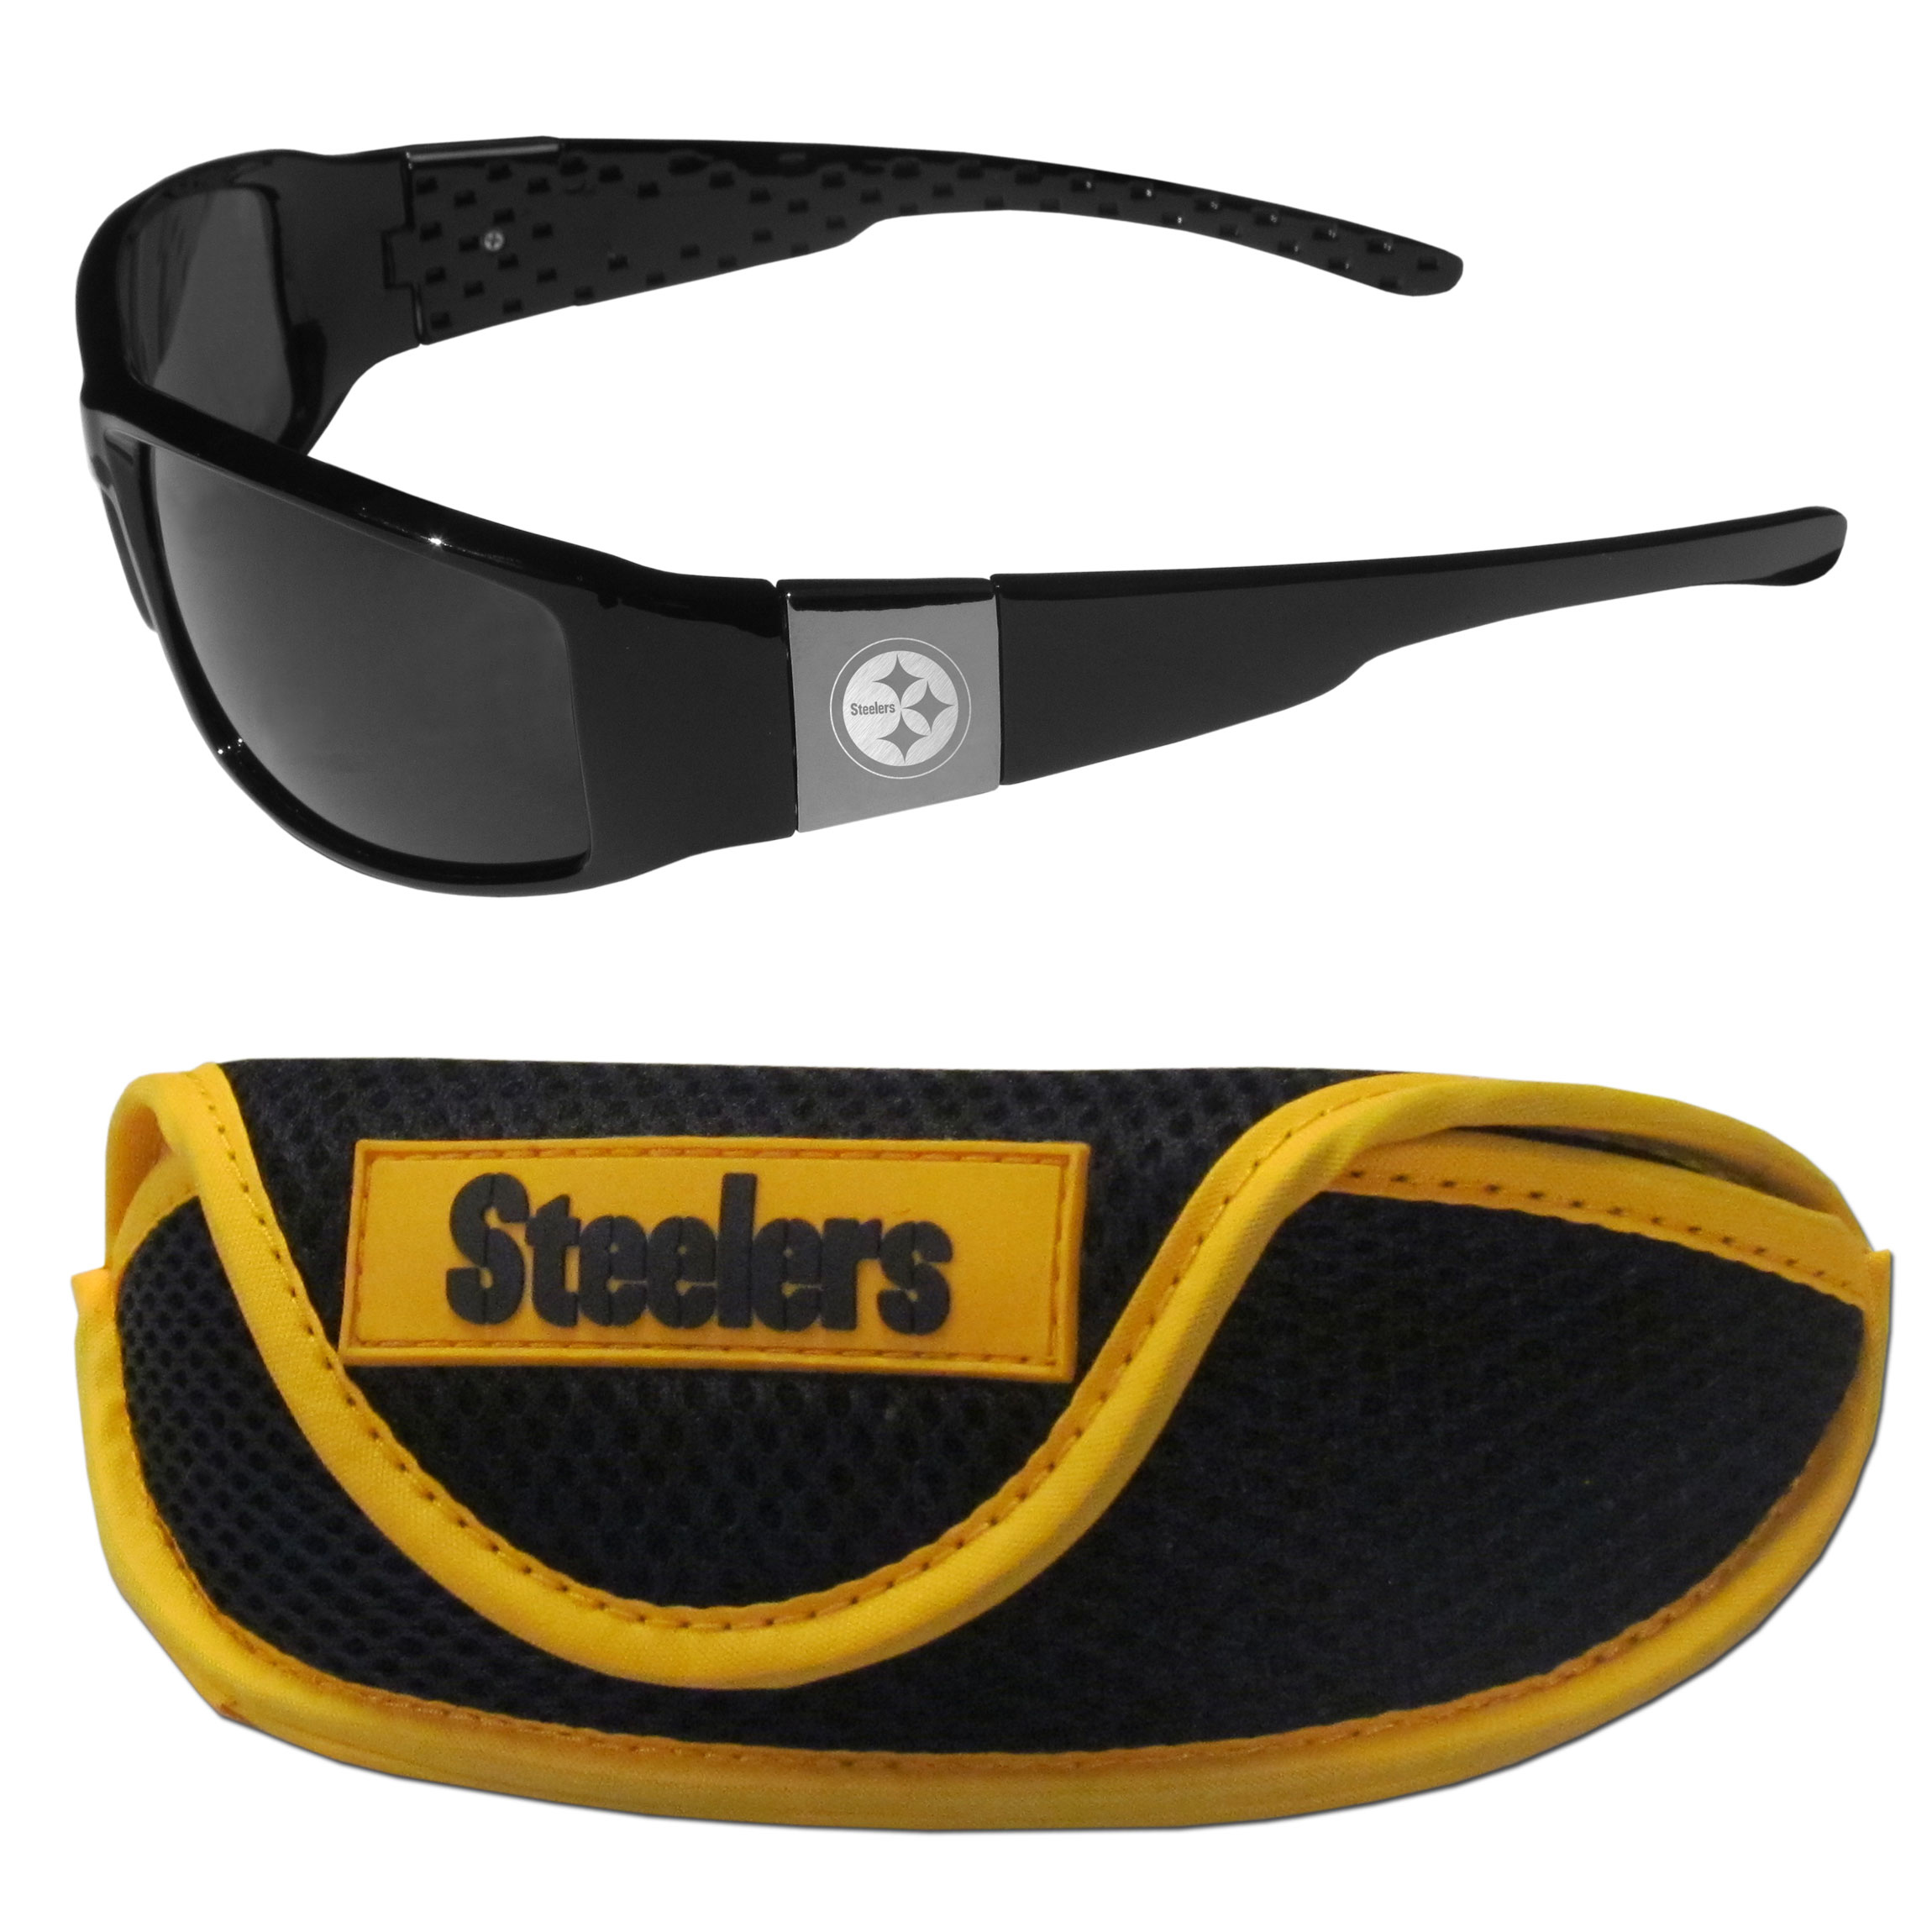 Pittsburgh Steelers Chrome Wrap Sunglasses and Sports Case - Our sleek and stylish Pittsburgh Steelers chrome wrap sunglasses and our sporty mesh case. The sunglasses feature etched team logos on each arm and 100% UVA/UVB protection. The case features a large and colorful team emblem.